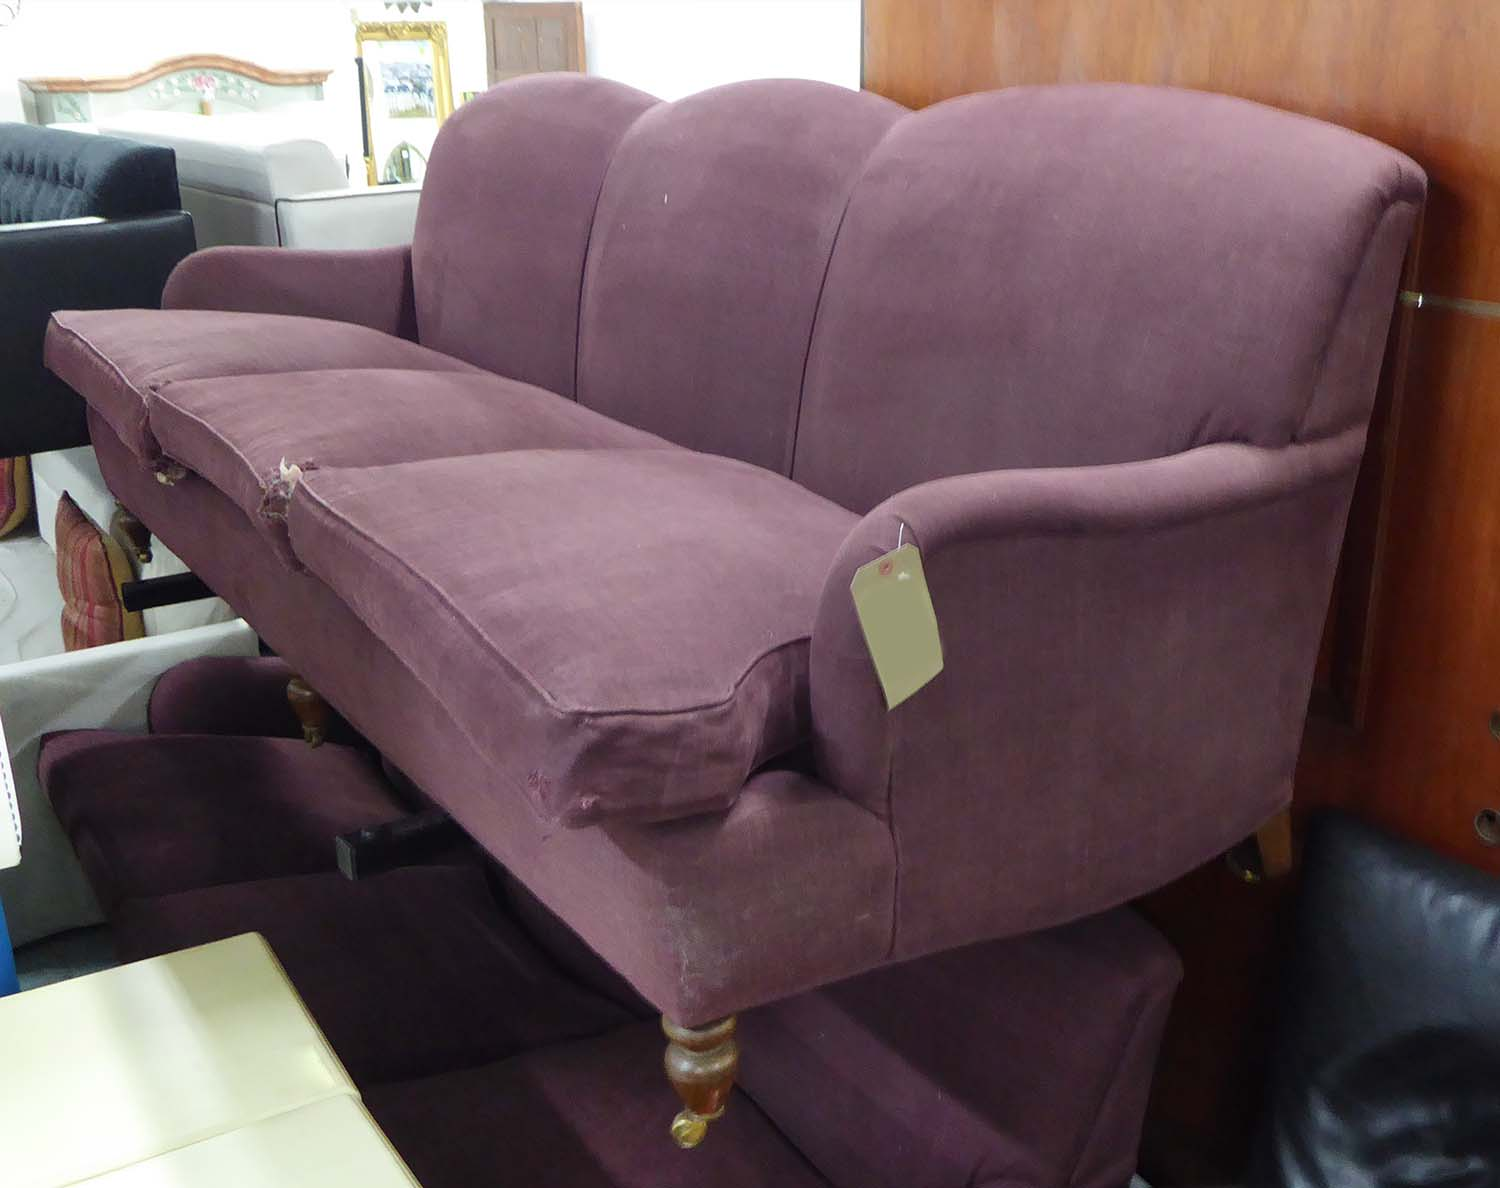 kingcome sofa sale luxury modern rattan outdoor barbados in aubergine coloured fabric howard style